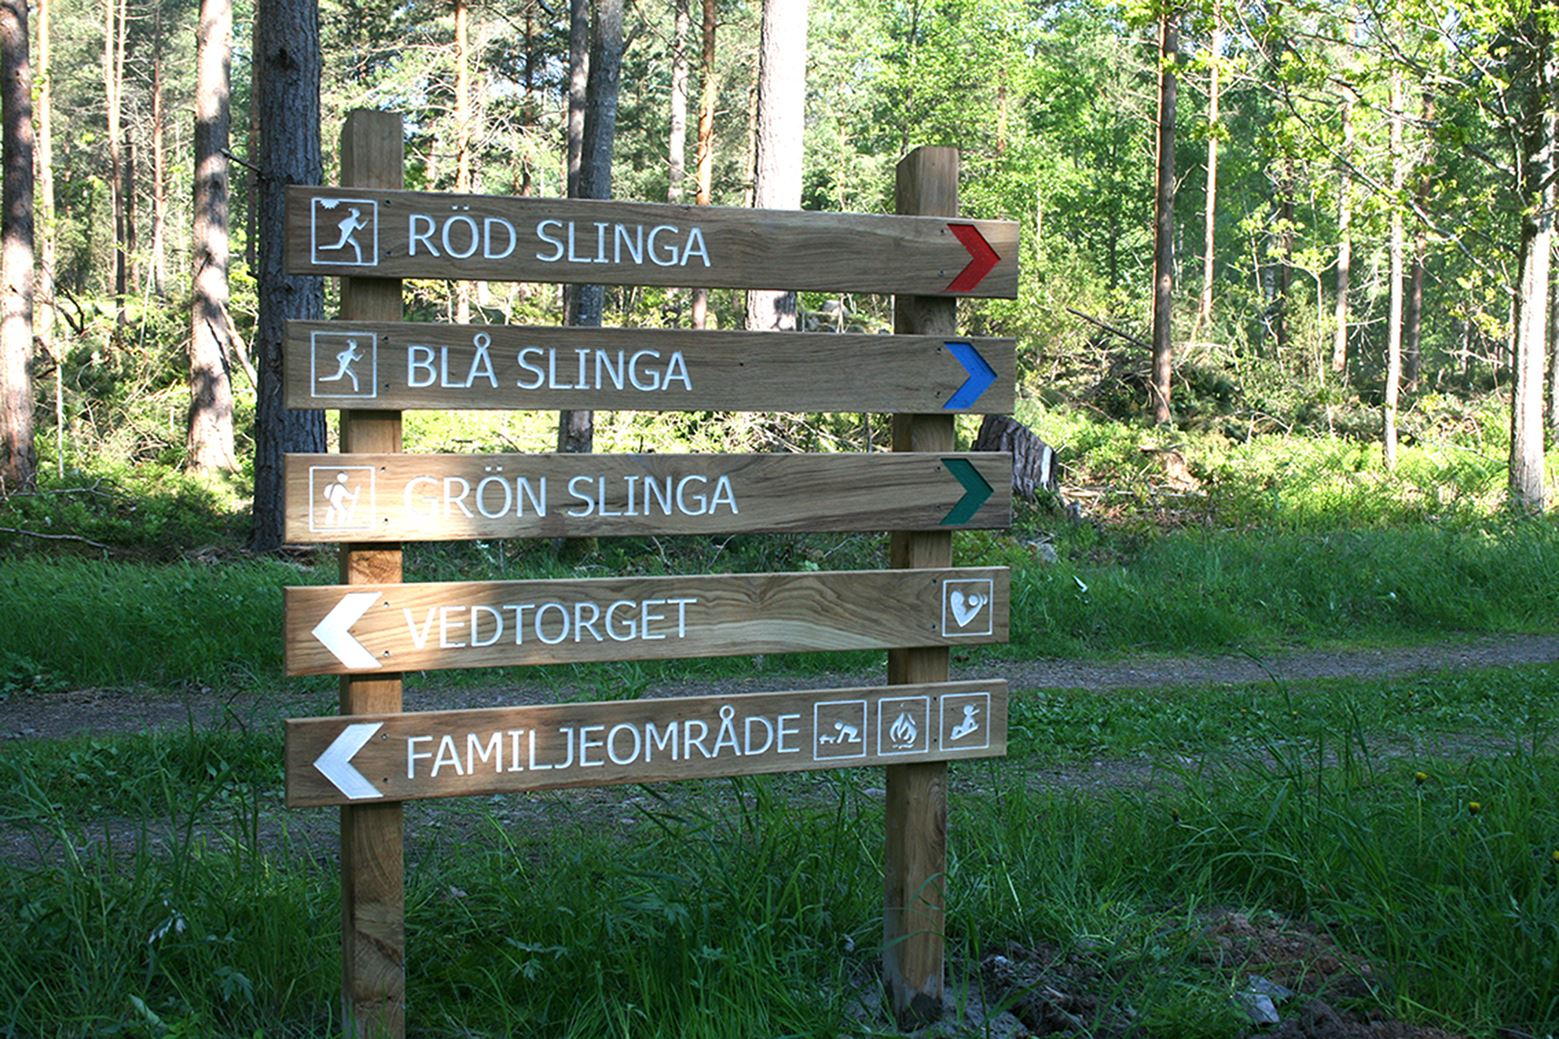 Havslätt jogging trails